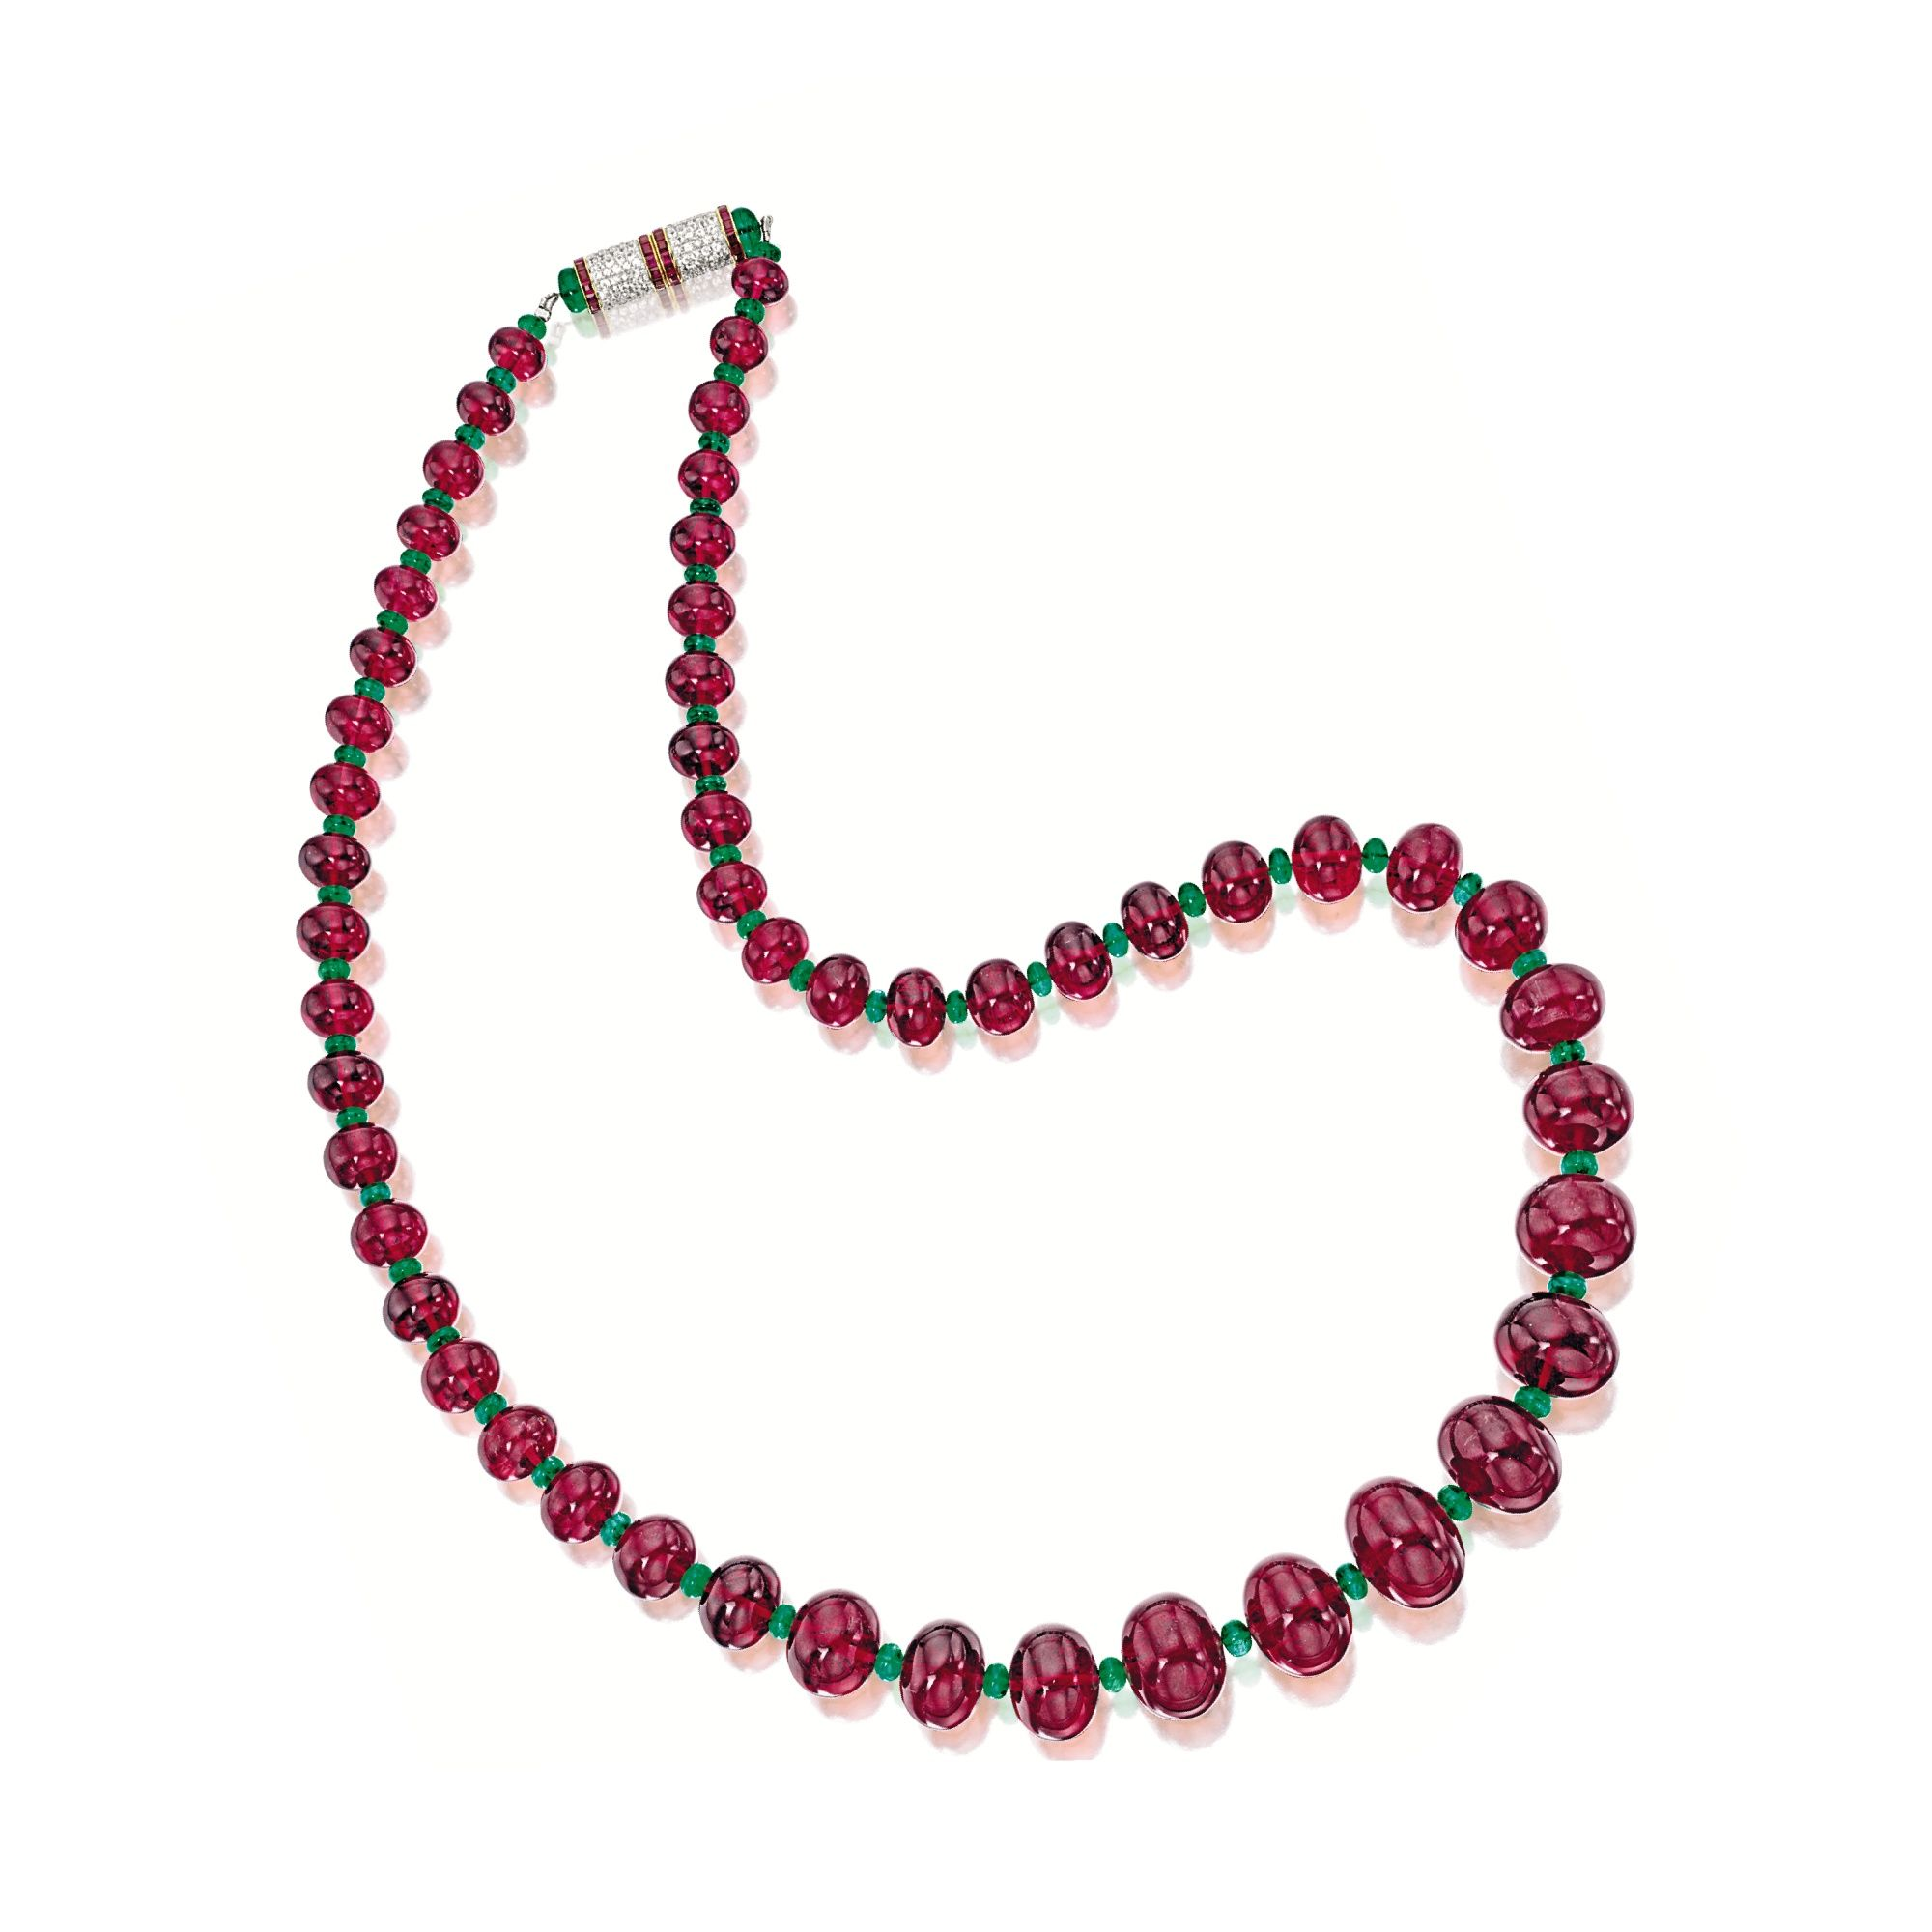 RUBELLITE, EMERALD AND GEM-SET NECKLACE The necklace composed of fifty-one graduated rubellite beads together weighing approximately 638.00 carats, spaced by emerald beads together weighing approximately 32.90 carats, completed by a cylindrical clasp set with rubies and colourless sapphires together weighing approximately 1.60 and 2.00 carats respectively, mounted in 18 karat white and yellow gold, length approximately 665mm.